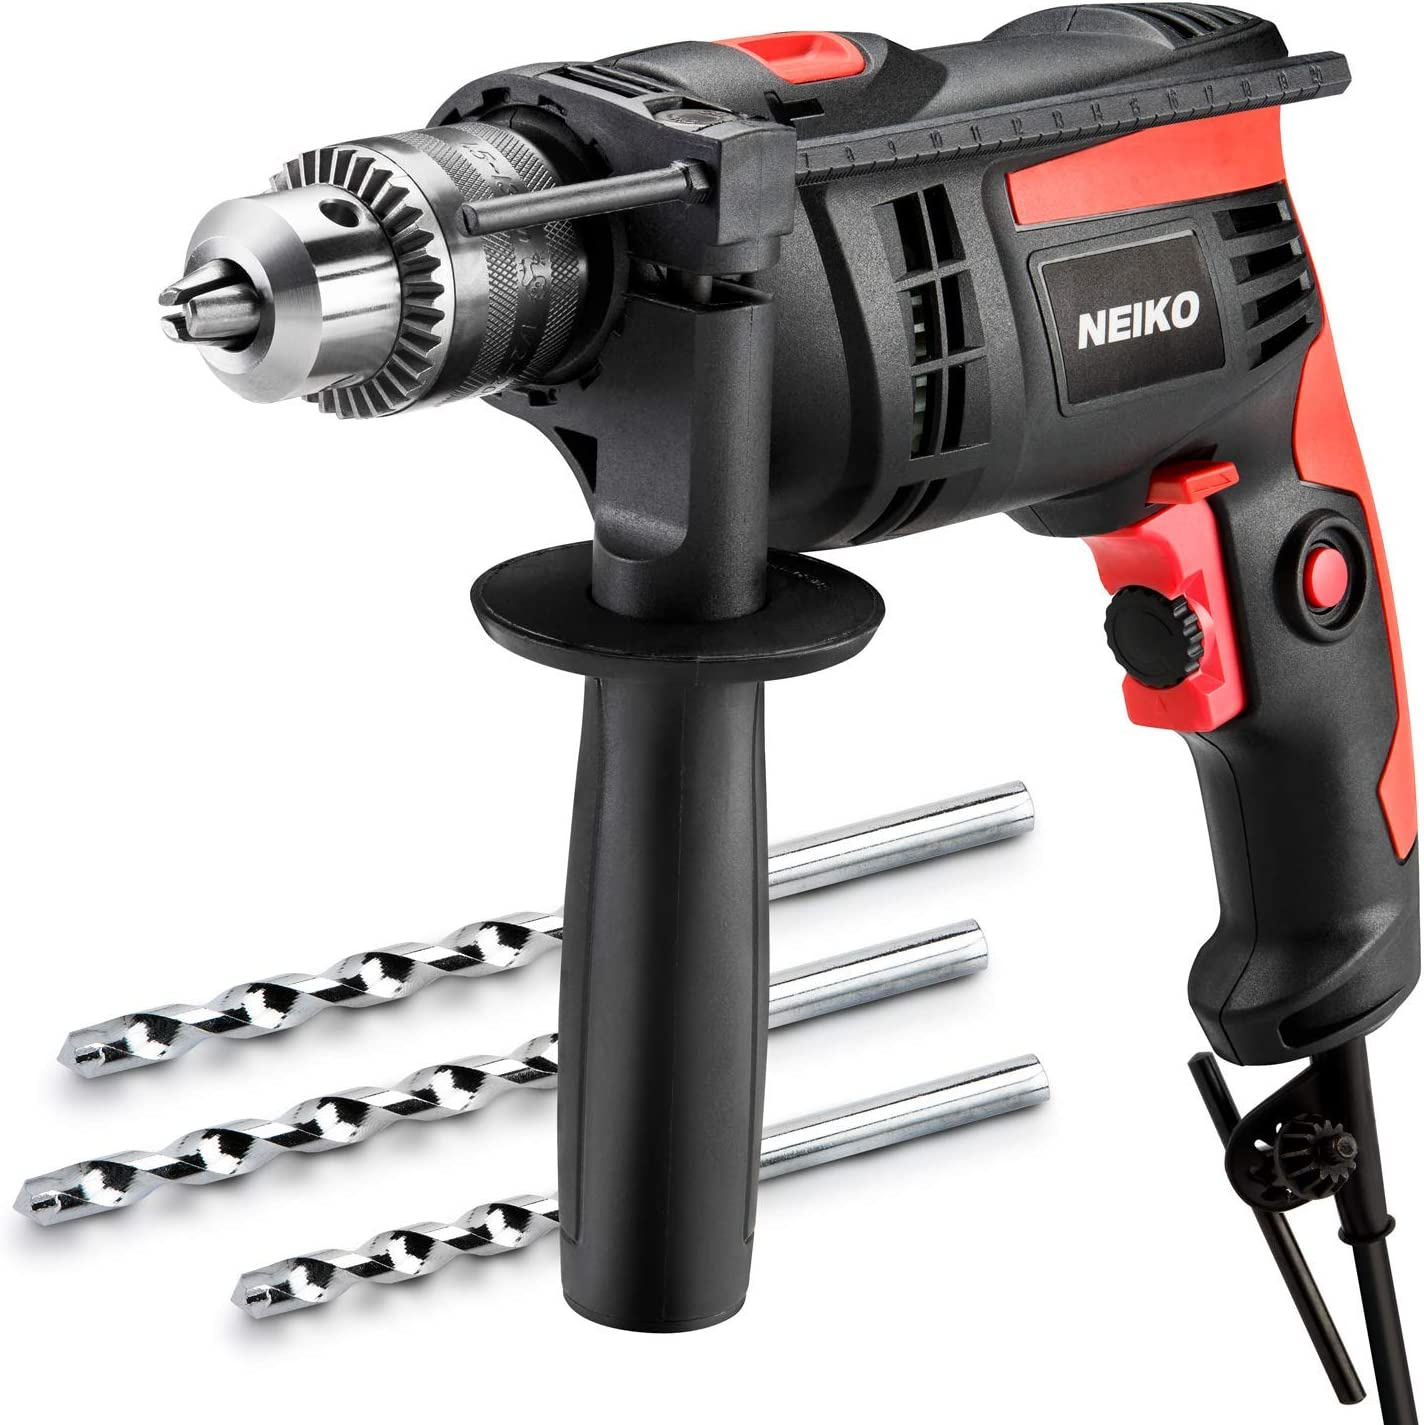 Neiko 10503A 6.0 Amp Corded Hammer Drill, 1 2-Inch Chuck, 2,800 RPM Metal, Wood, Masonry Variable Speed